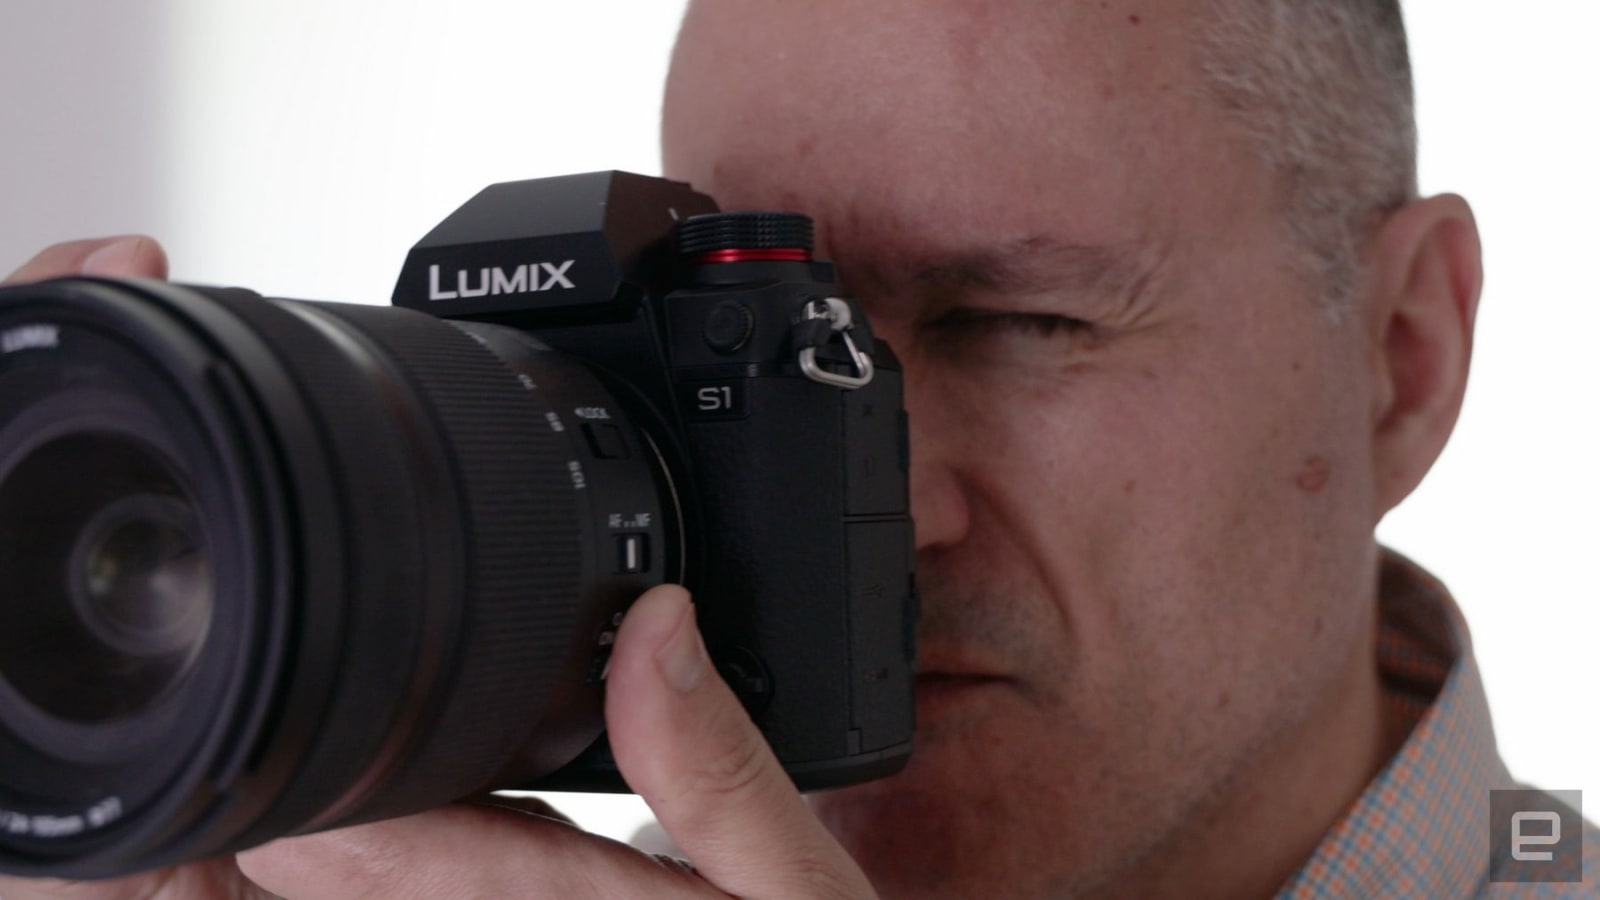 Panasonic S1 mirrorless camera review